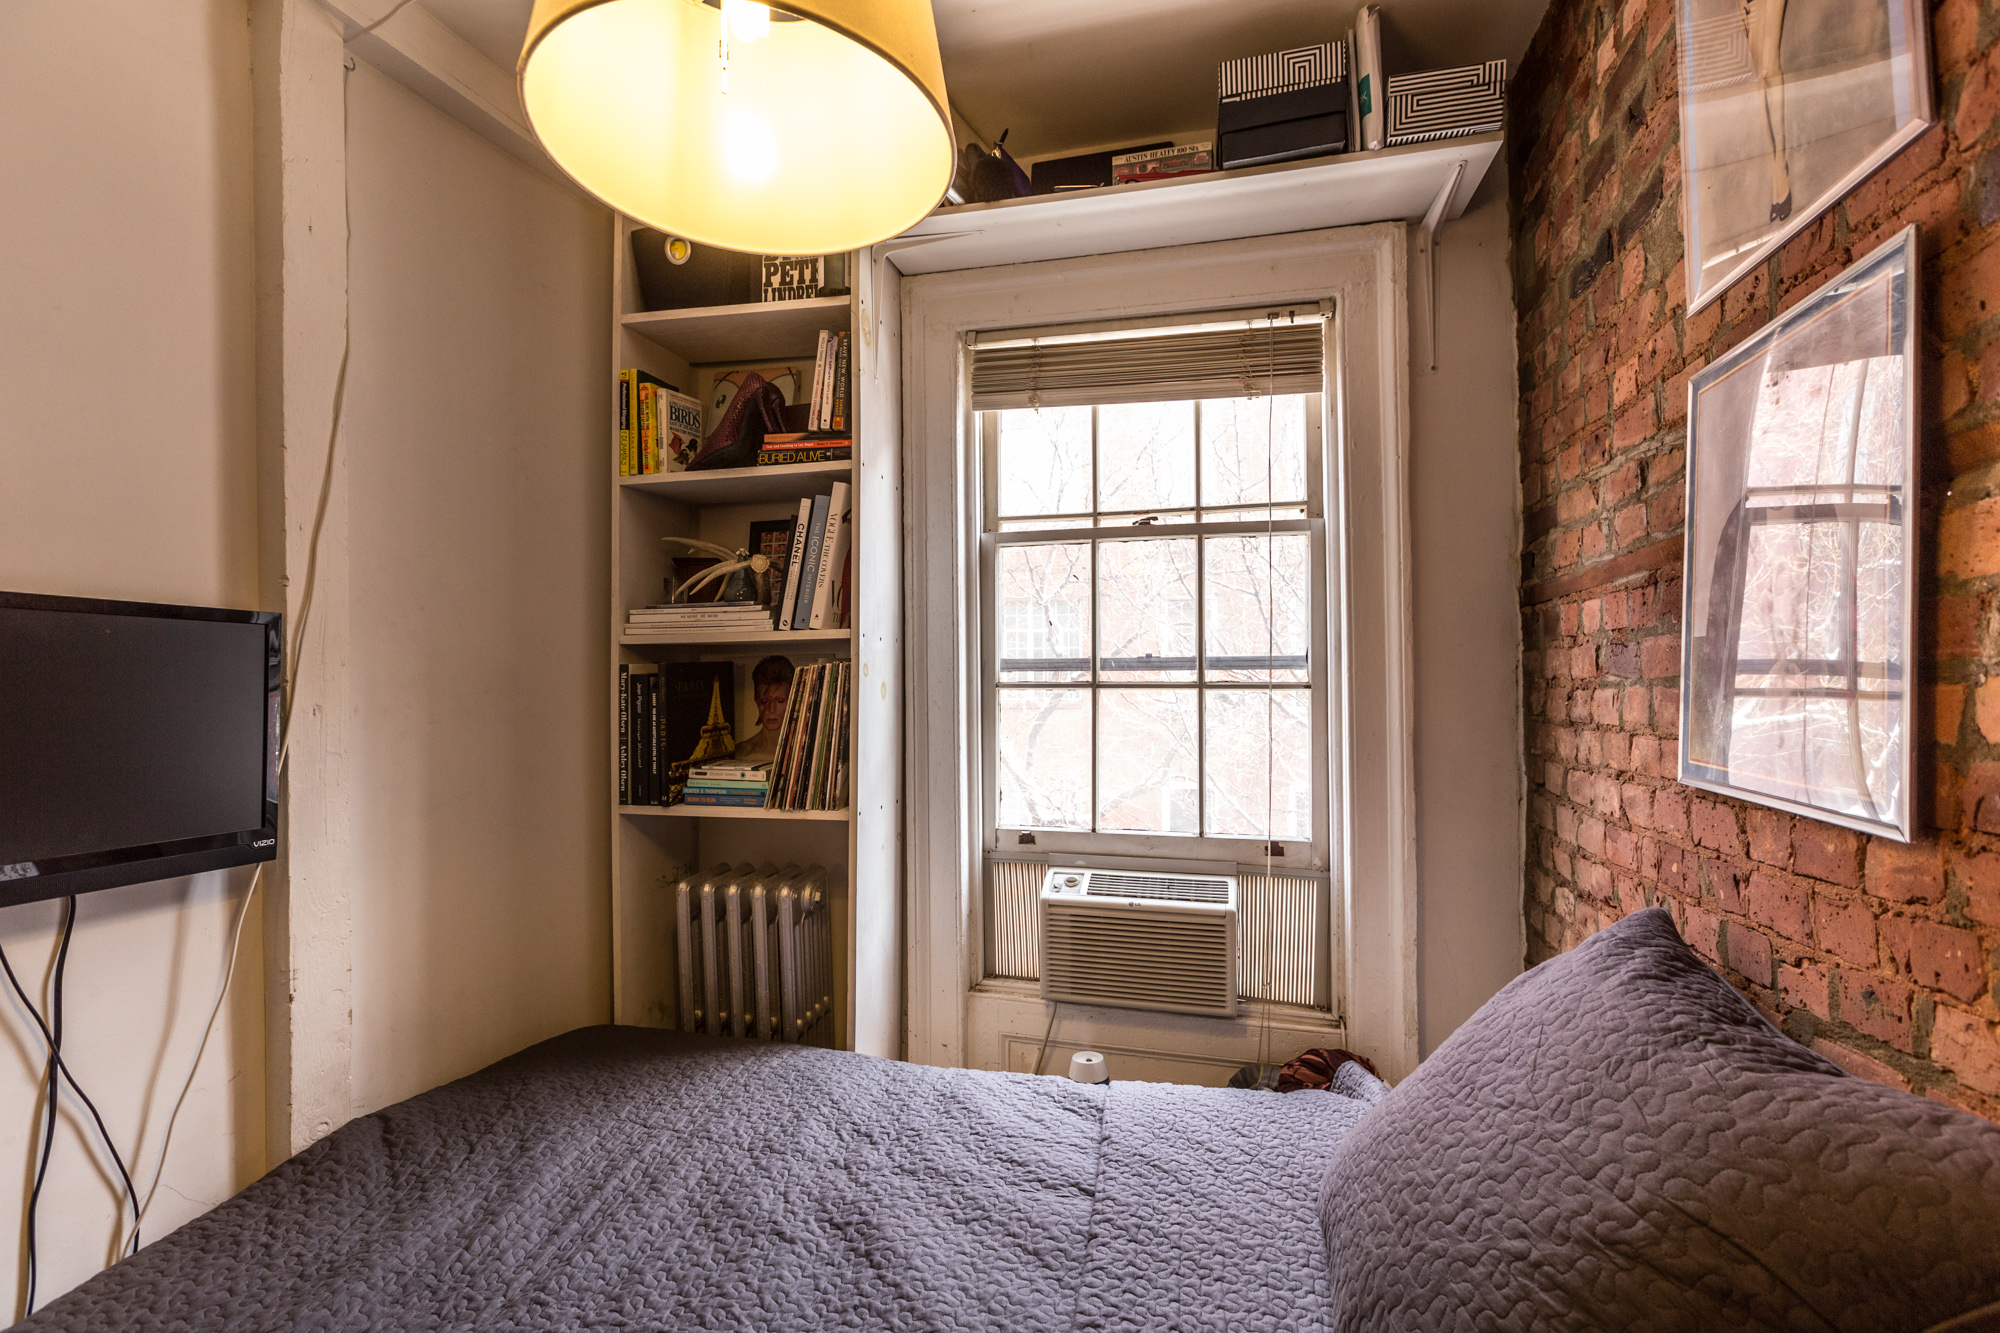 How one new yorker lives comfortably in 90 square feet for 90s room design